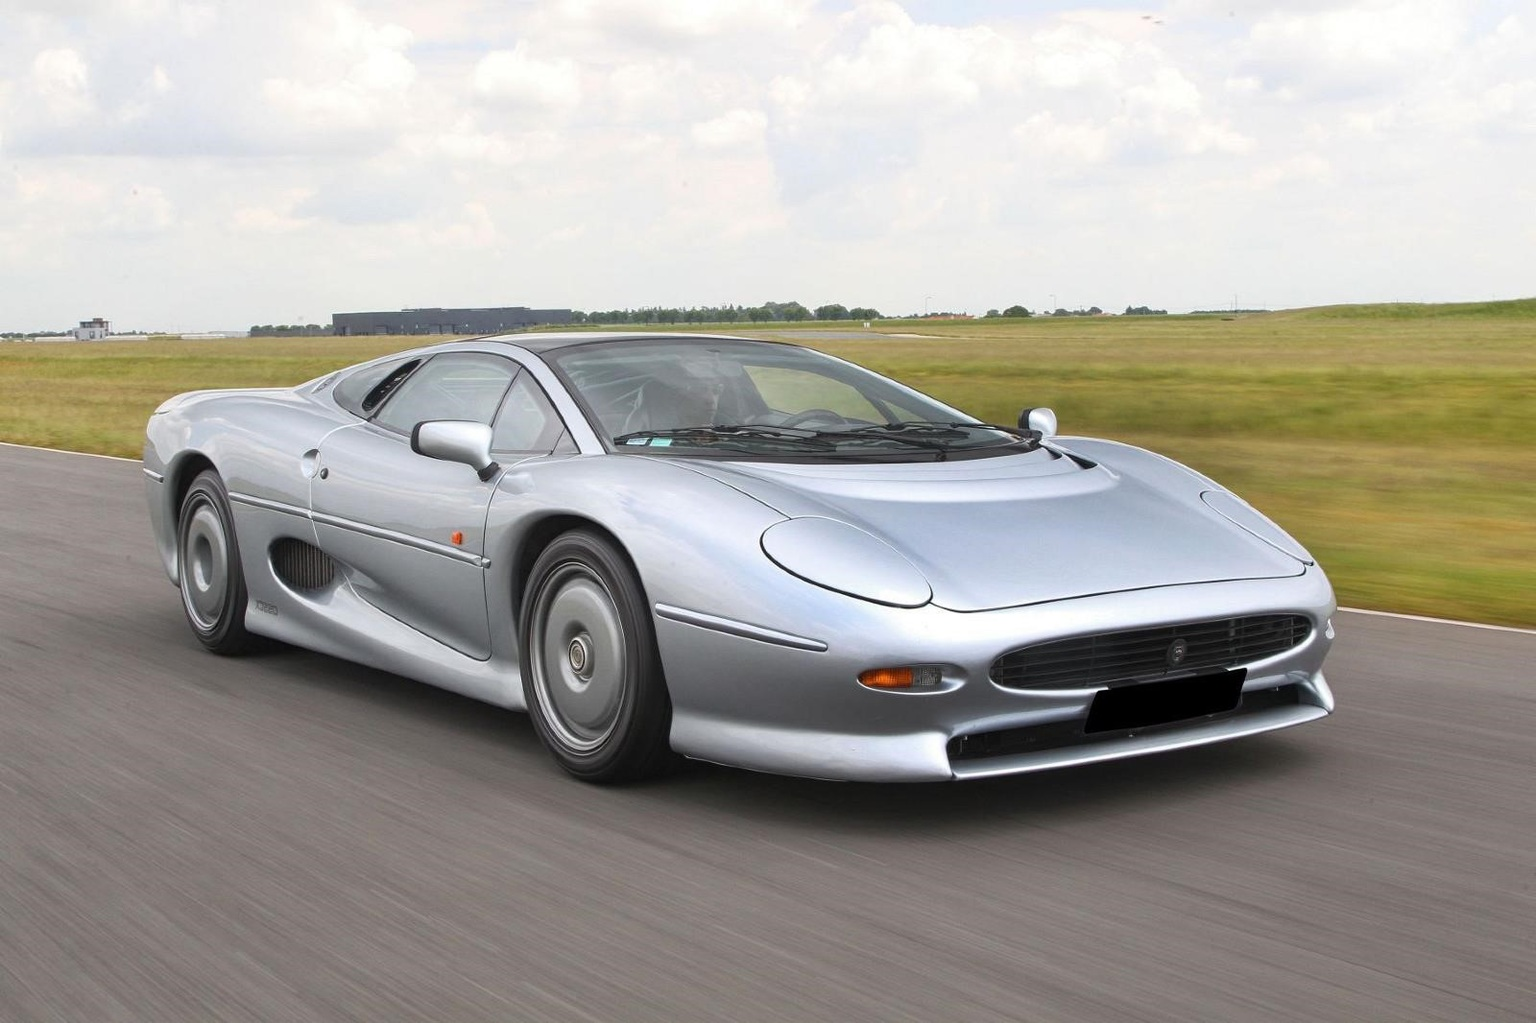 Car Wallpapers 4k Bentely Jaguar Xj220 Jaguar Supercars Net